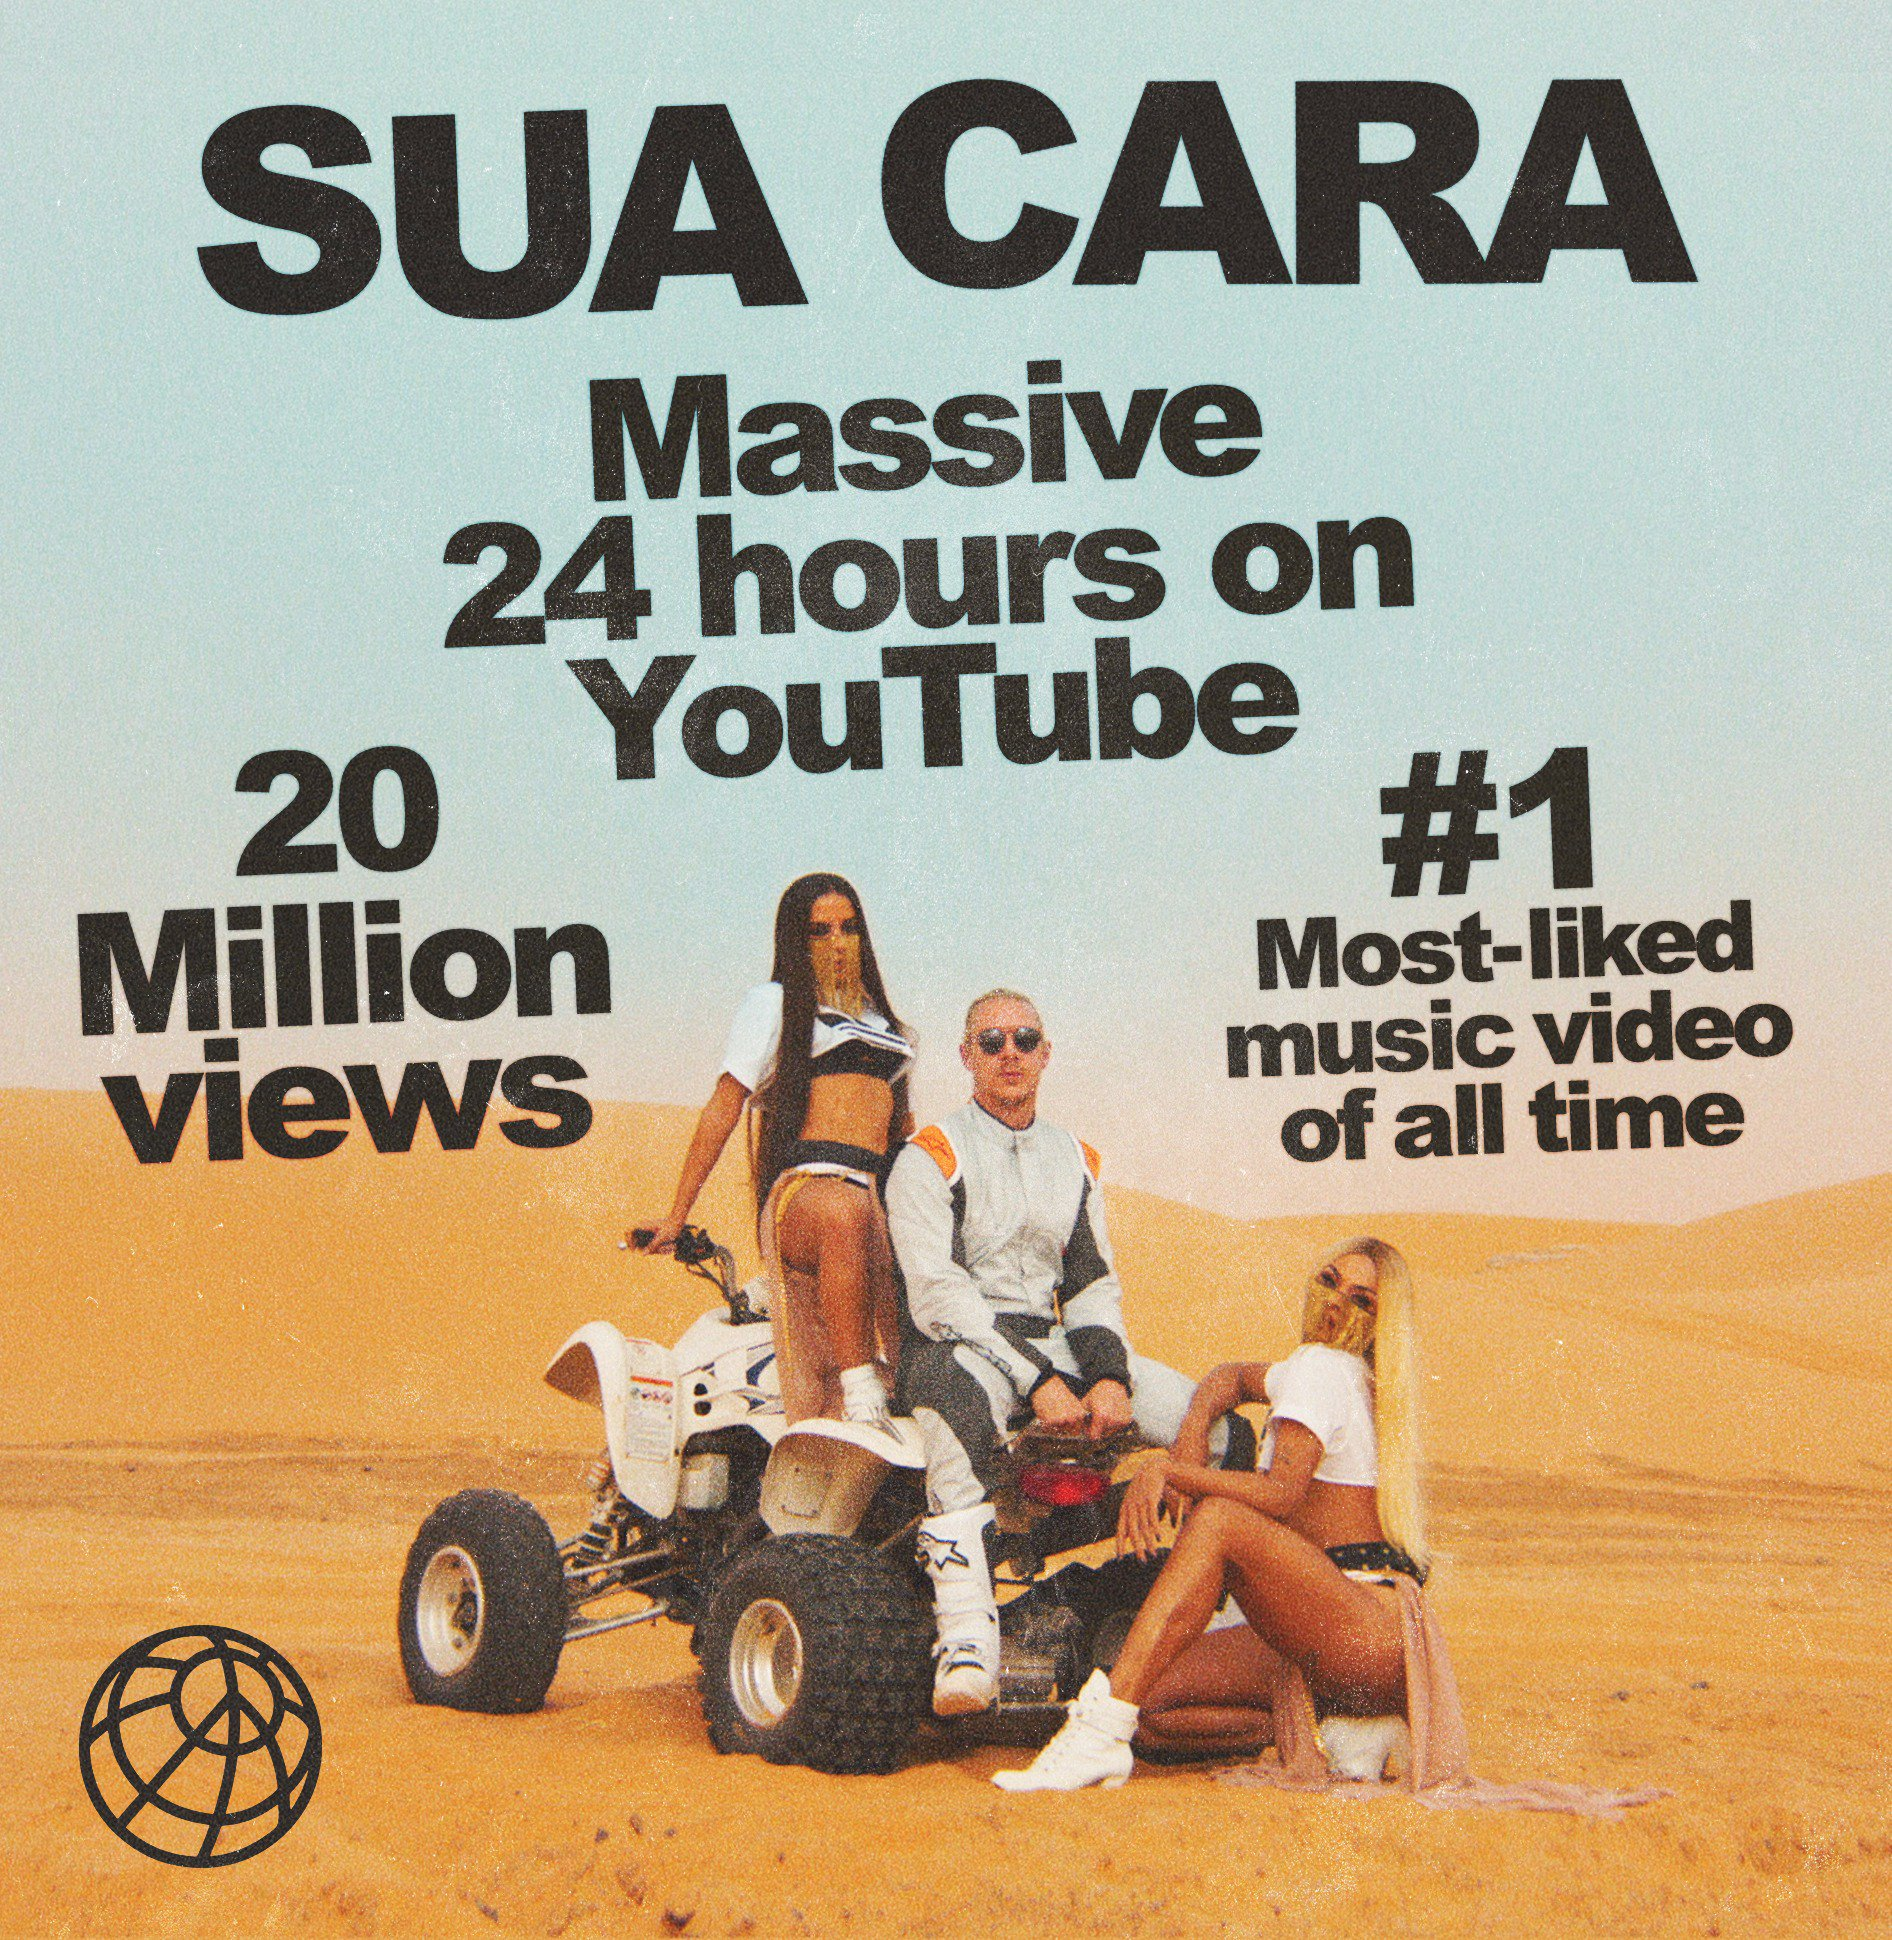 THANK YOU FOR HELPING US MAKE  HISTORY LAST WEEK WITH SUA CARA  @ANITTA @PABLLOVITTAR @YOUTUBE https://t.co/FZtEaM4Iyf